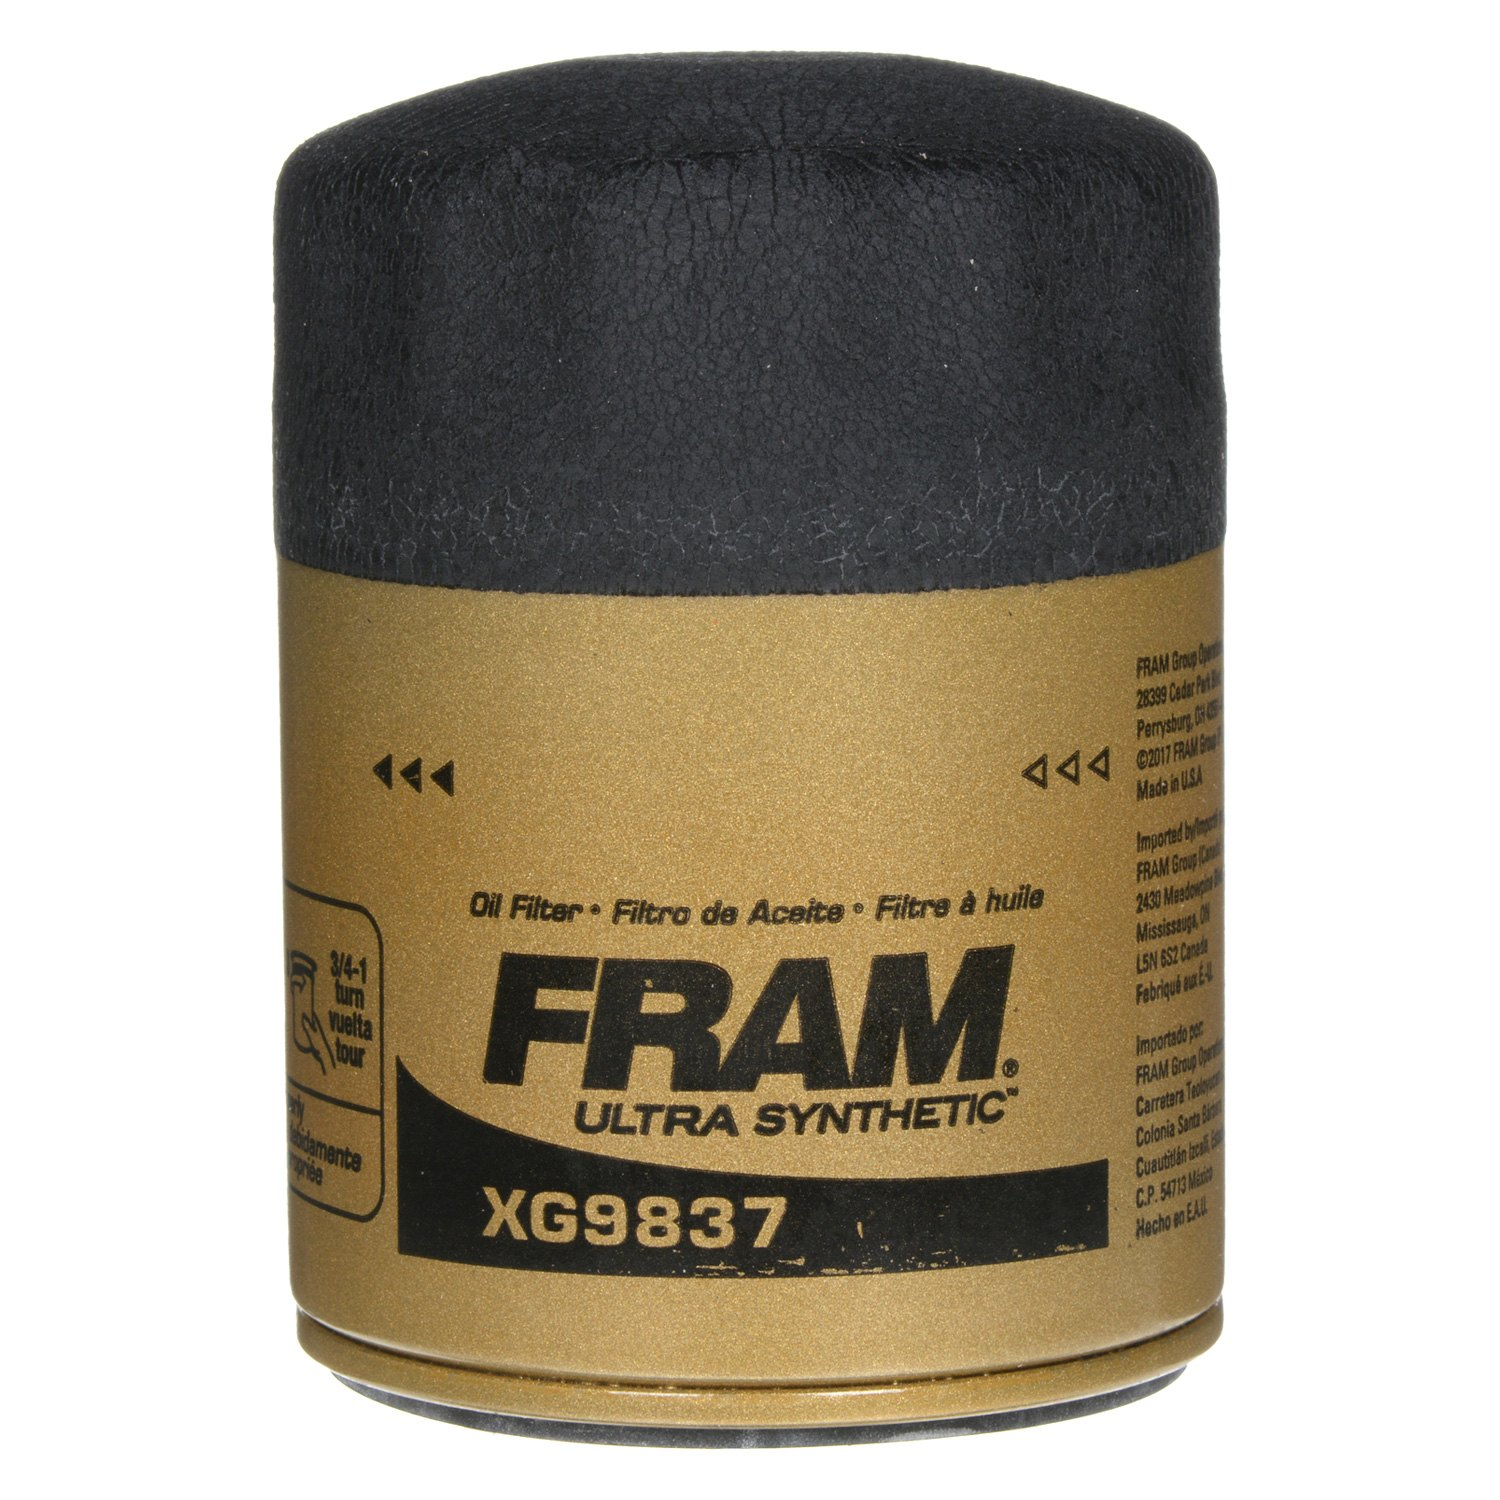 Fram Xg9837 Ultra Synthetic Oil Filter 2009 Pontiac G6 Fuel